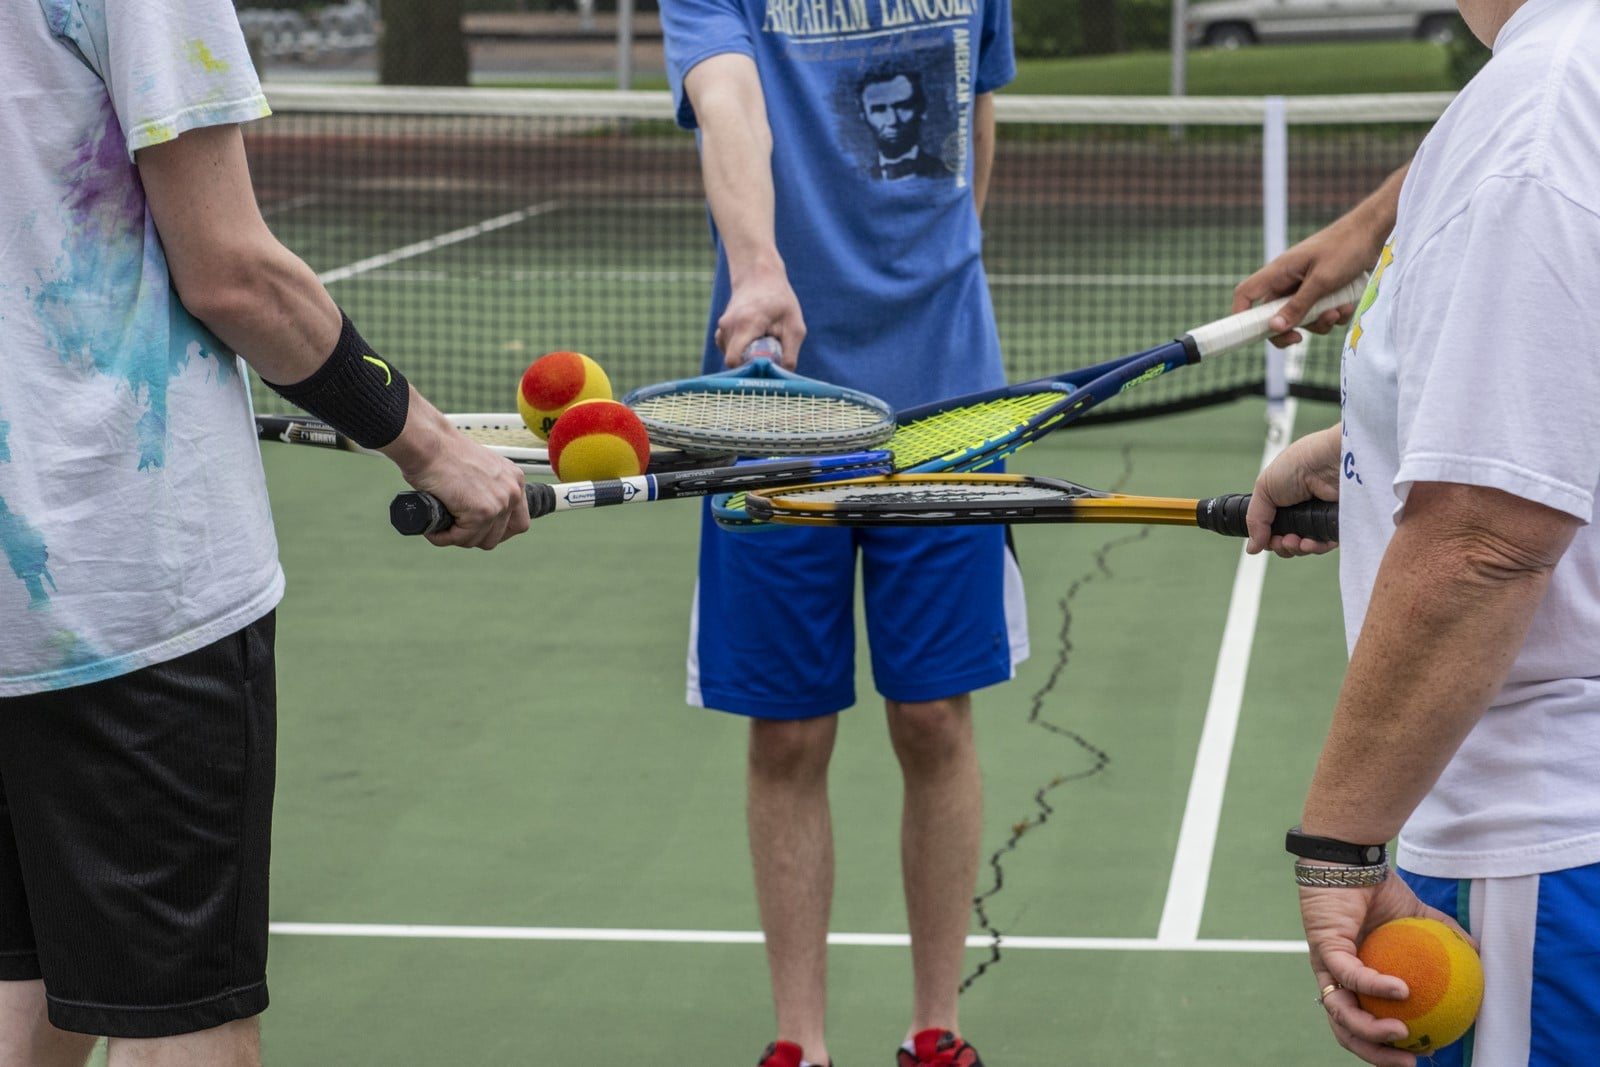 A tight photo of four tennis rackets all touching and overlapping in a circle